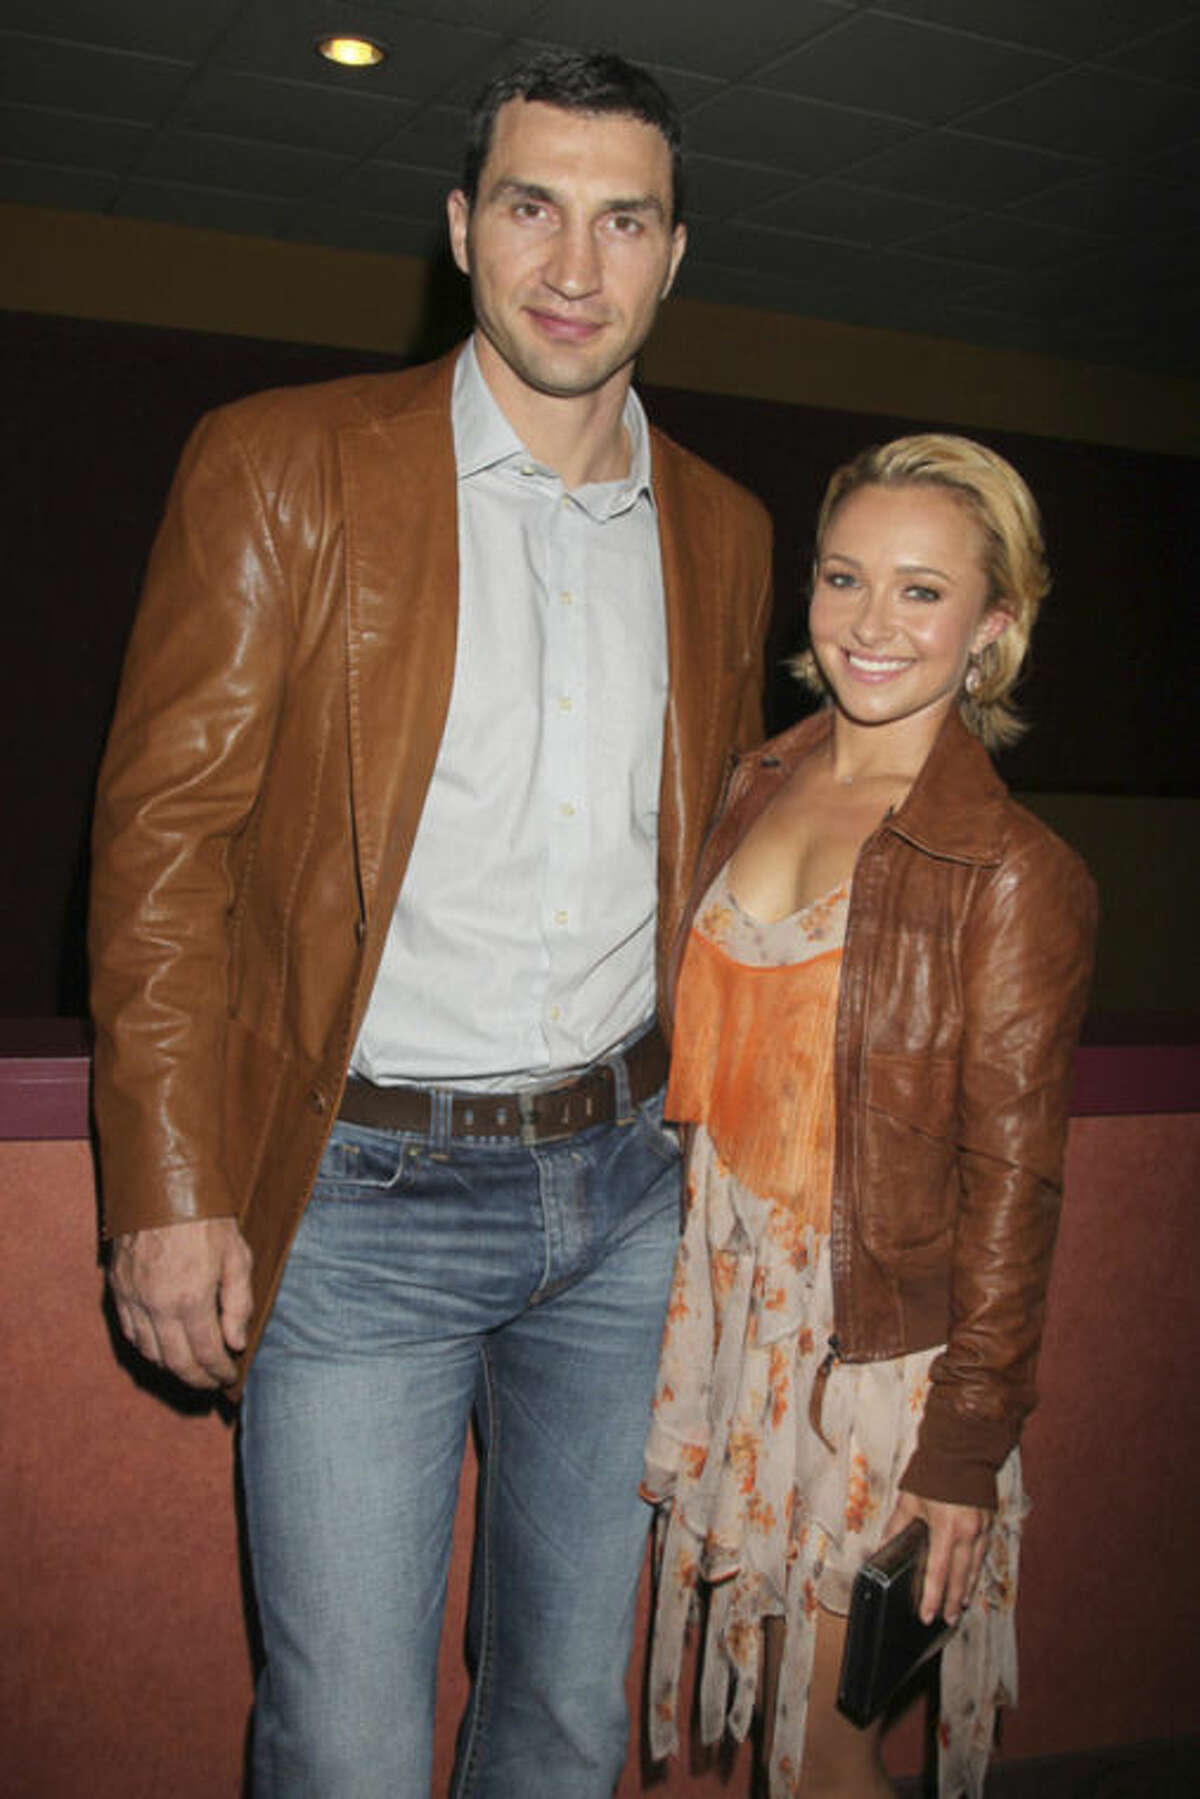 """FILE - In this April 23, 2011 file photo released by Starpix, actress Hayden Panettiere and boxer Wladimer Klitschko arrive at a Tribecca Film Festival screening of ?""""Hoodwinked Too! Hood vs. Evil,"""" in New York. Panettiere is confirming her engagement to Olympic boxer Wladimir Klitschko. Appearing on """"Live with Kelly and Michael,"""" Wednesday, Oct. 9, 2013, the 24-year-old actress was flashing a large diamond ring that prompted host Kelly Ripa to inquire what it might signify. (AP Photo/Starpix, Davre Allocca, File)"""